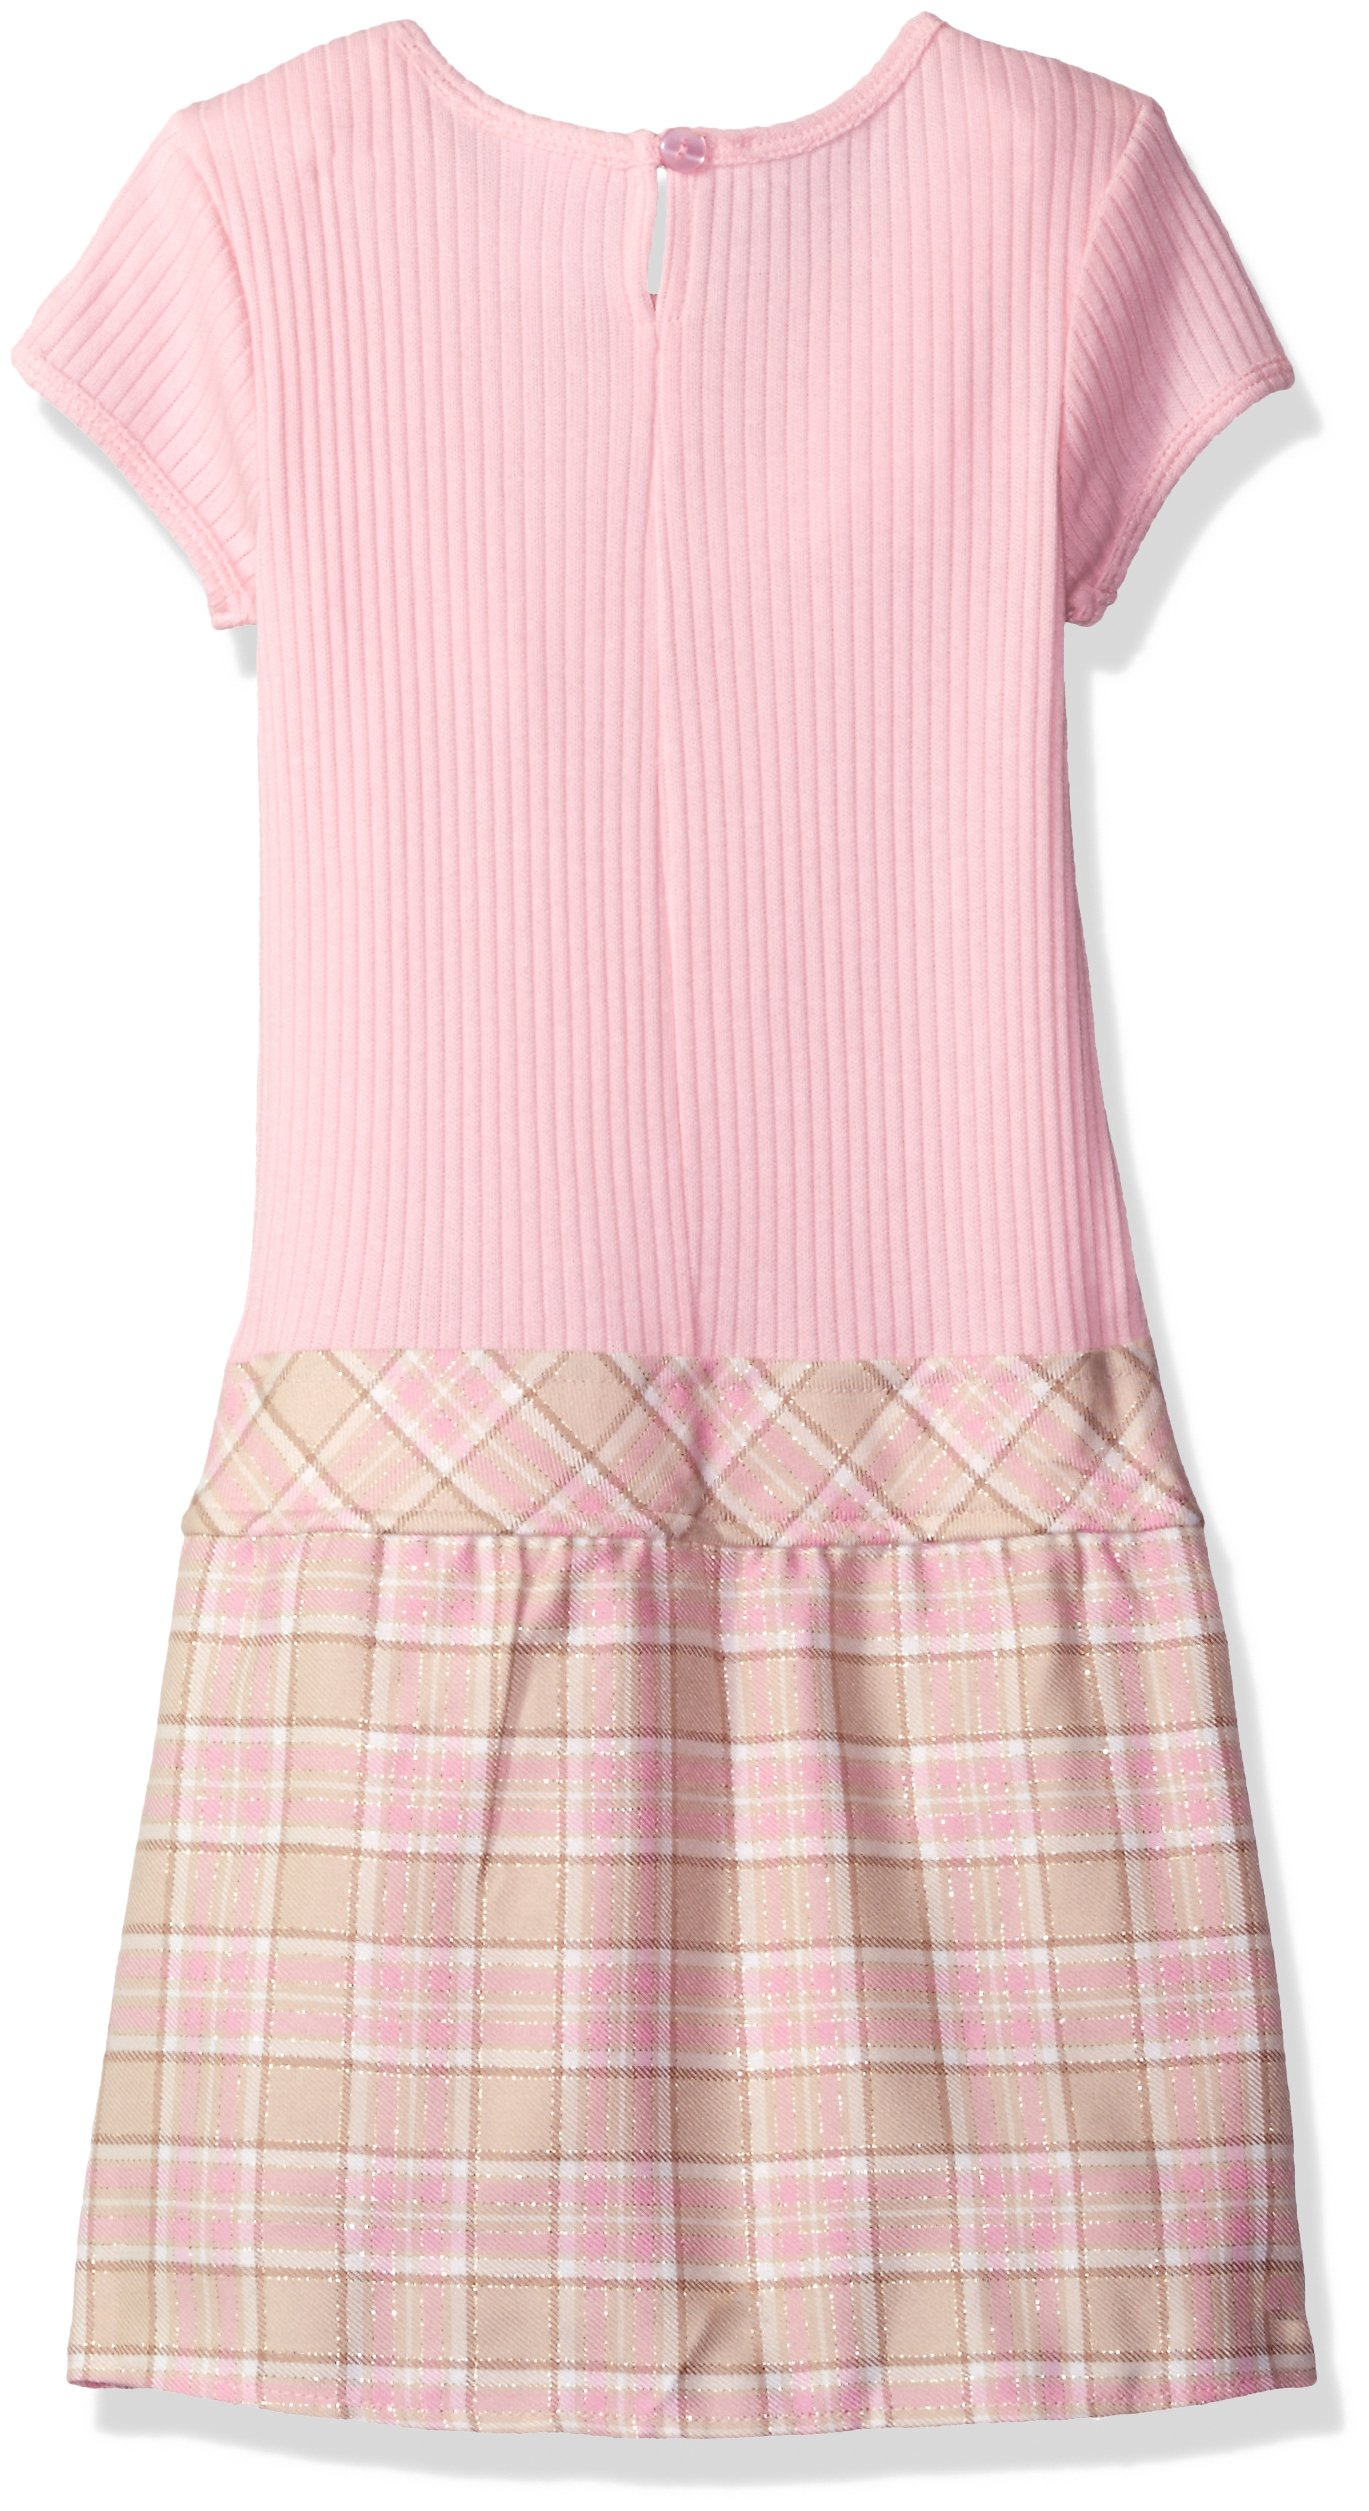 Youngland Little Girls' Woven Plaid Coat with Faux Fur Trim and Pink Knit to Woven Plaid Dress, Pink/Tan, 4 by Youngland (Image #2)